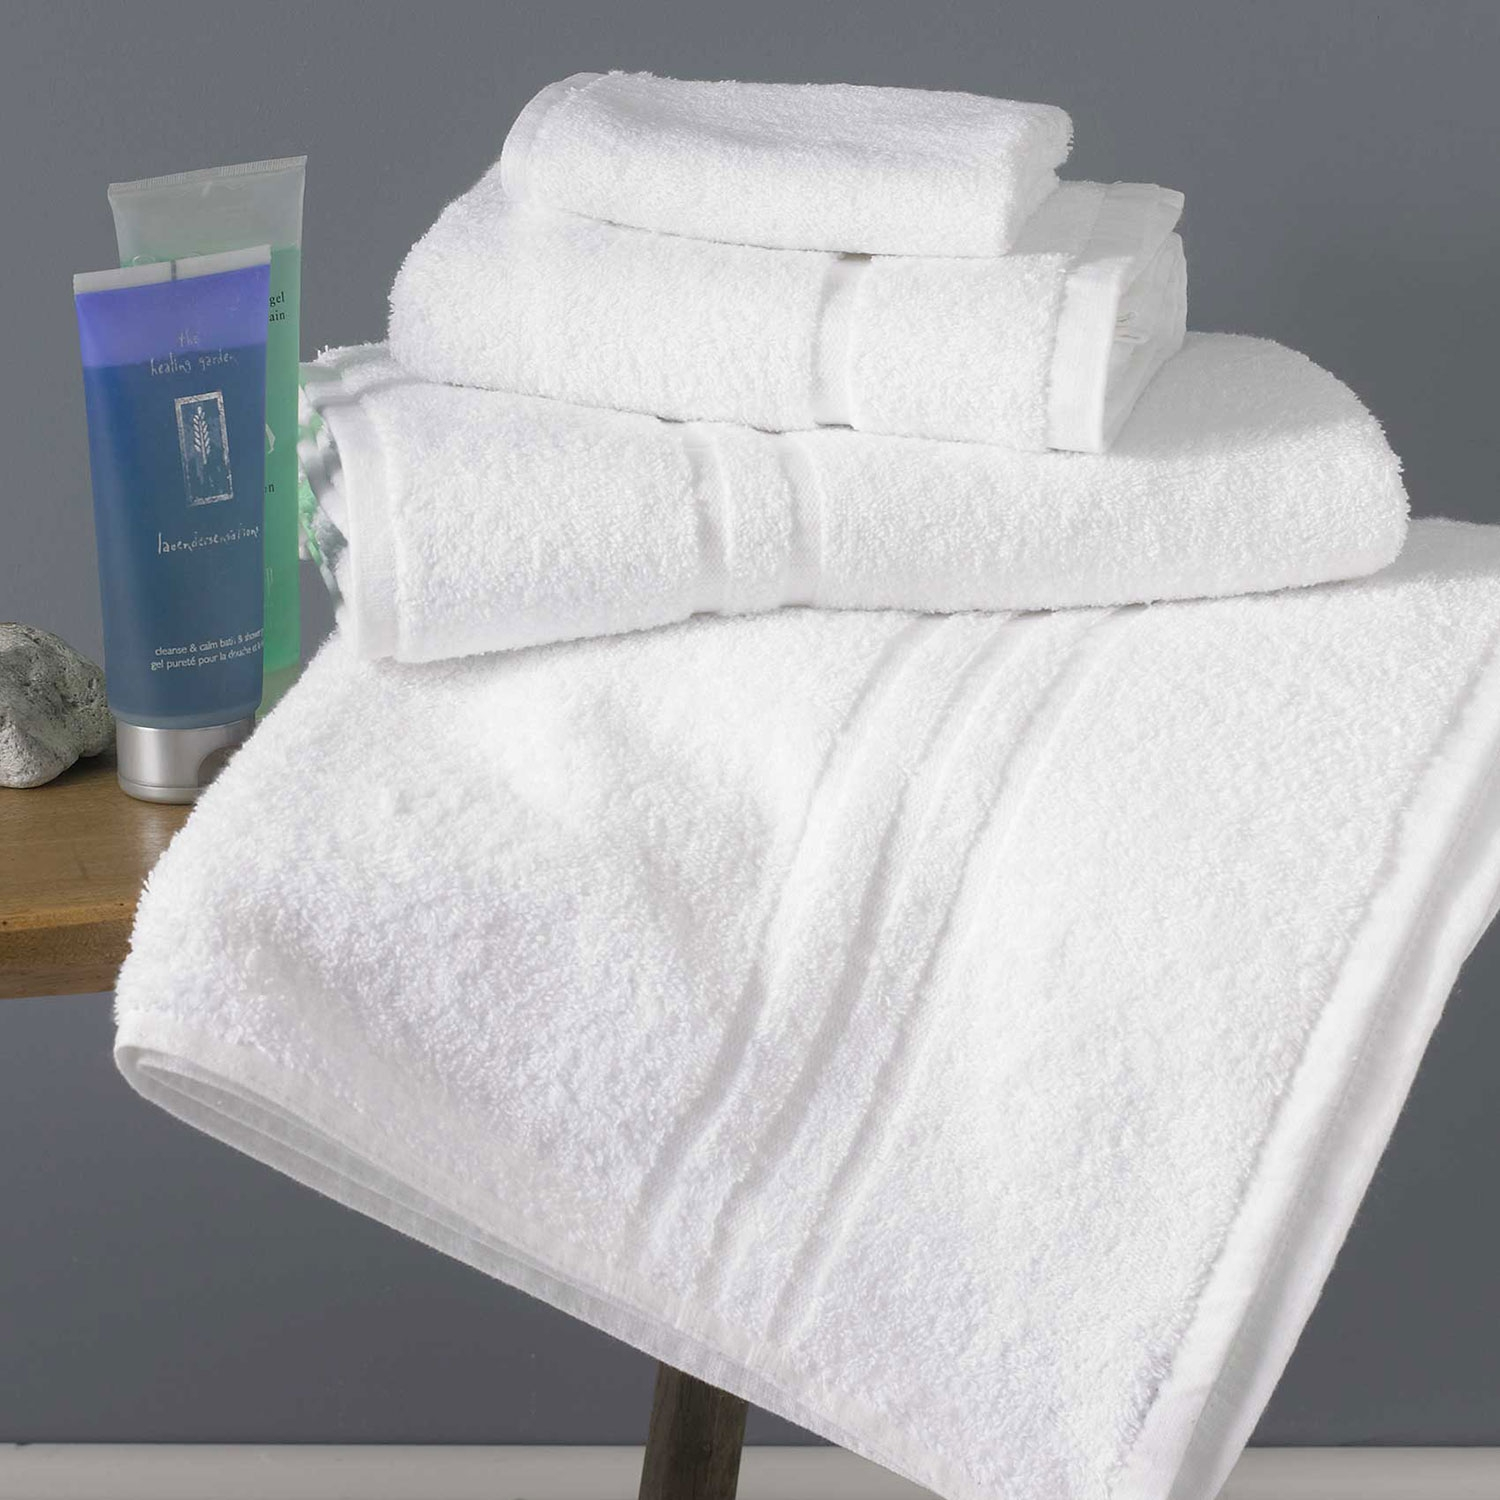 SUTTON COTTON TOWELS